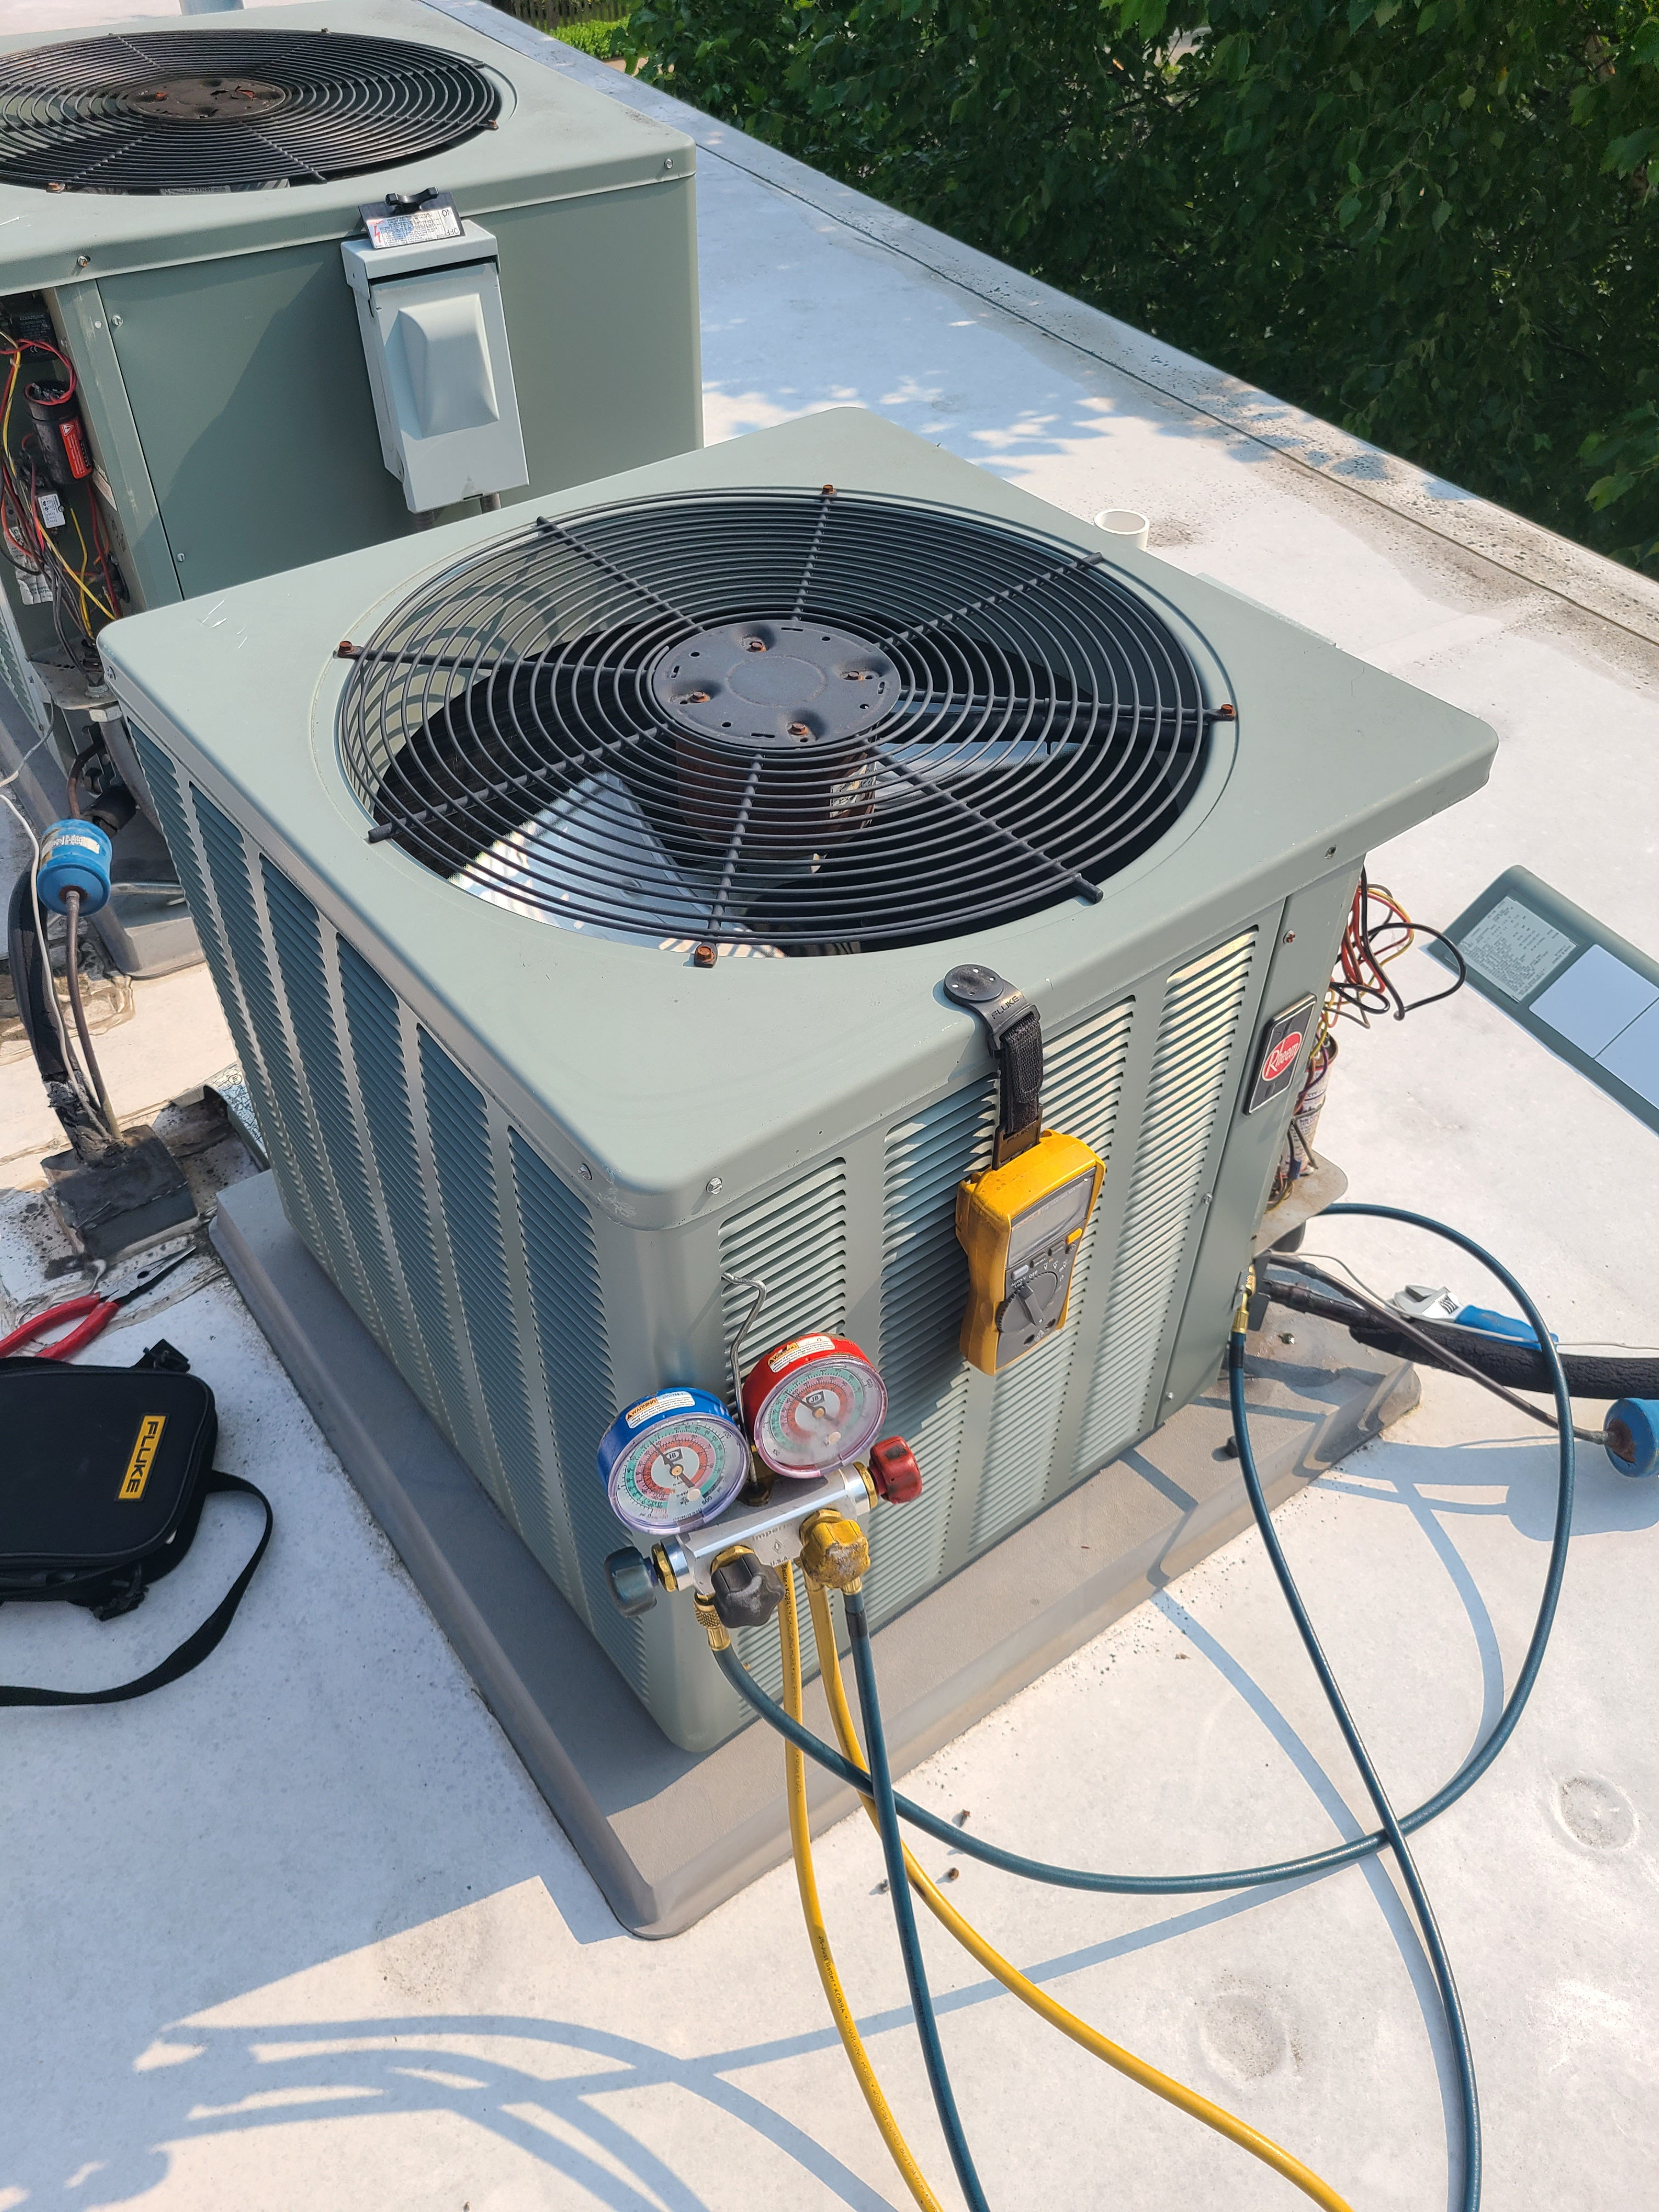 Rheem ac summer tune up and maintenance. System cleaned and checked and ready for summer.